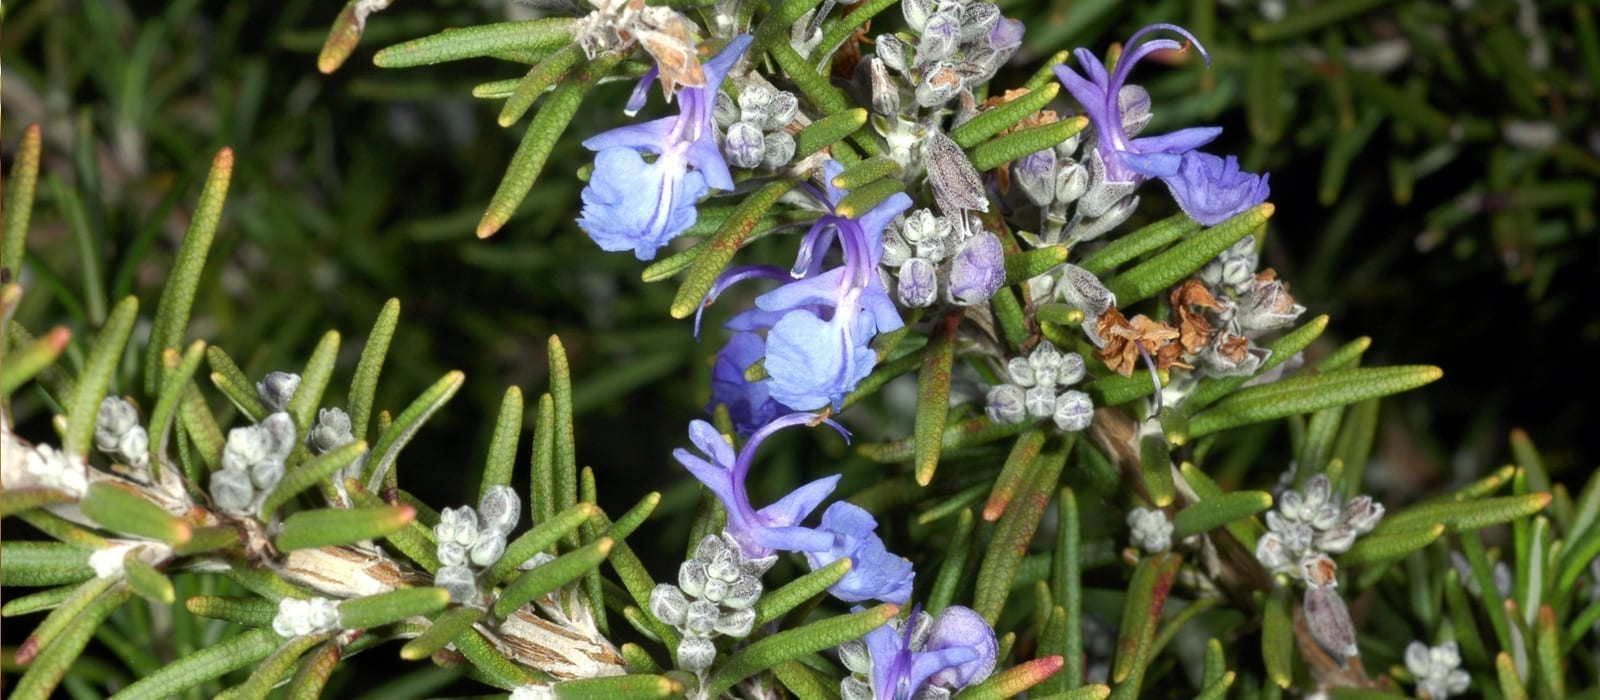 Rosemary Essential Oils for Headaches